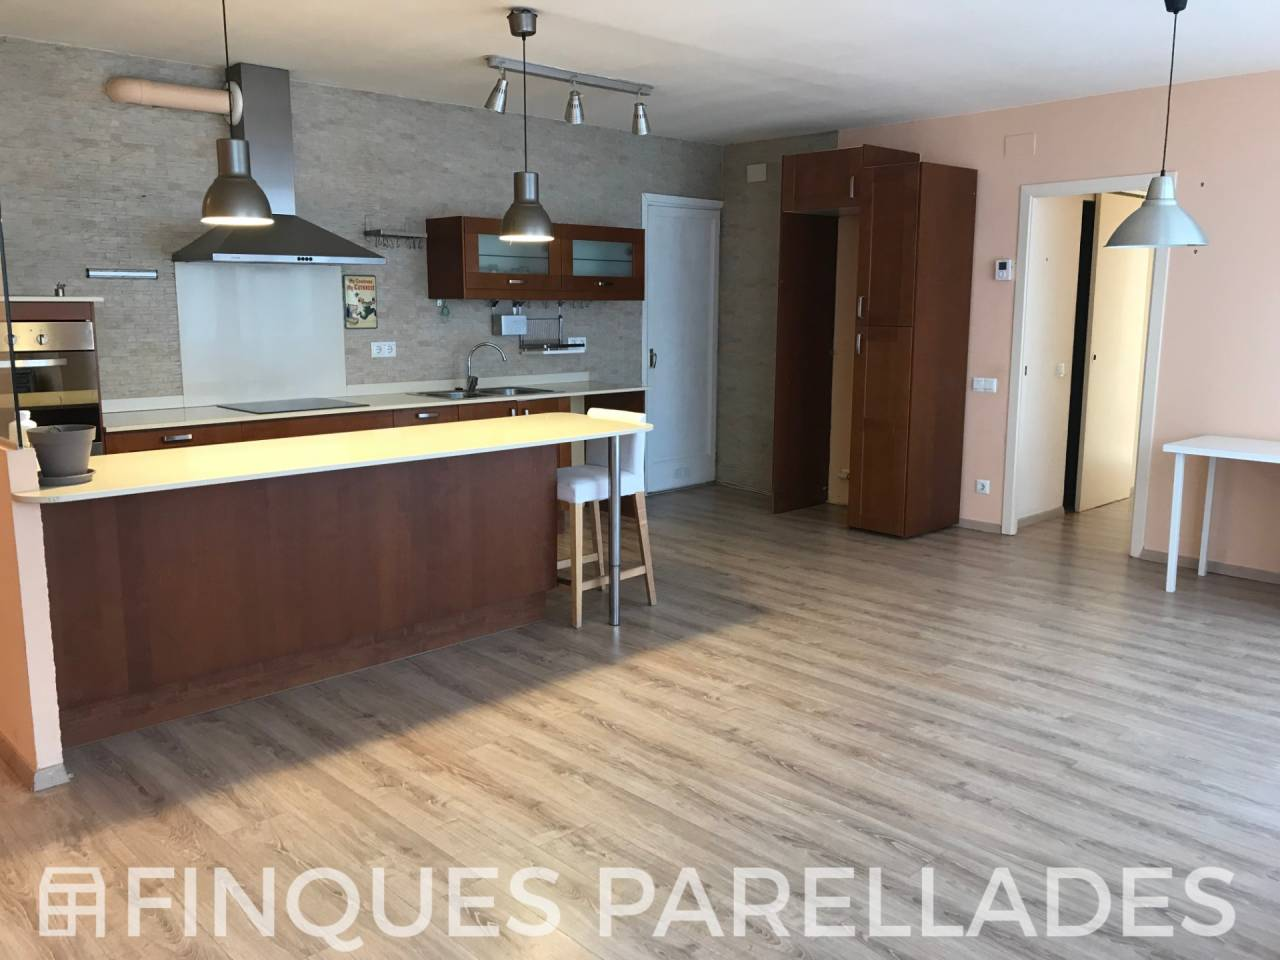 Spacious and bright apartment in the center of Sites with parking and lift. Downtown area.